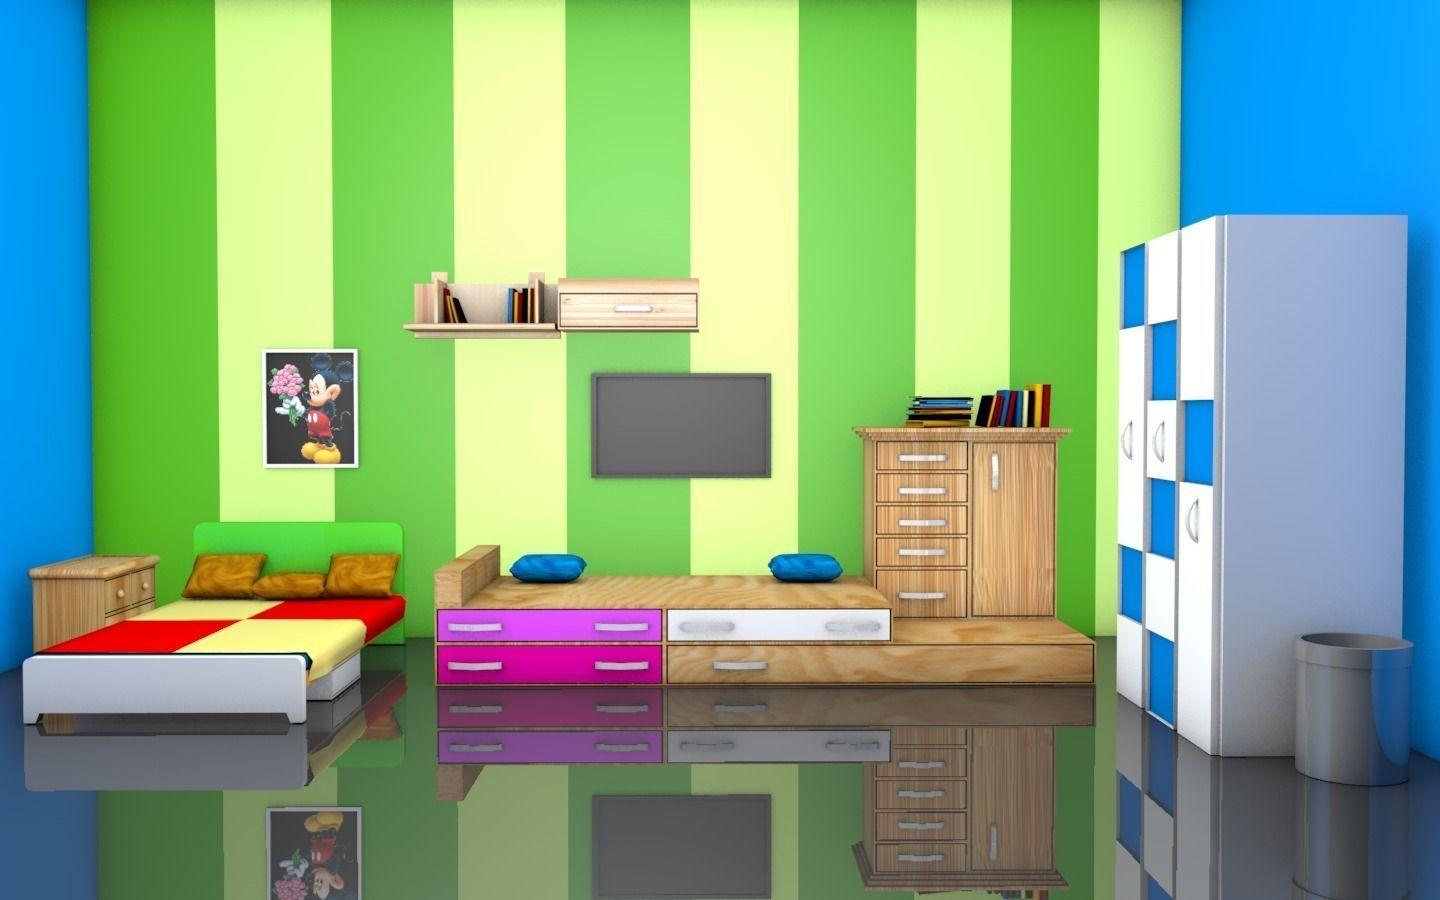 Kids room interior free 3d model obj c4d 3d room design software free